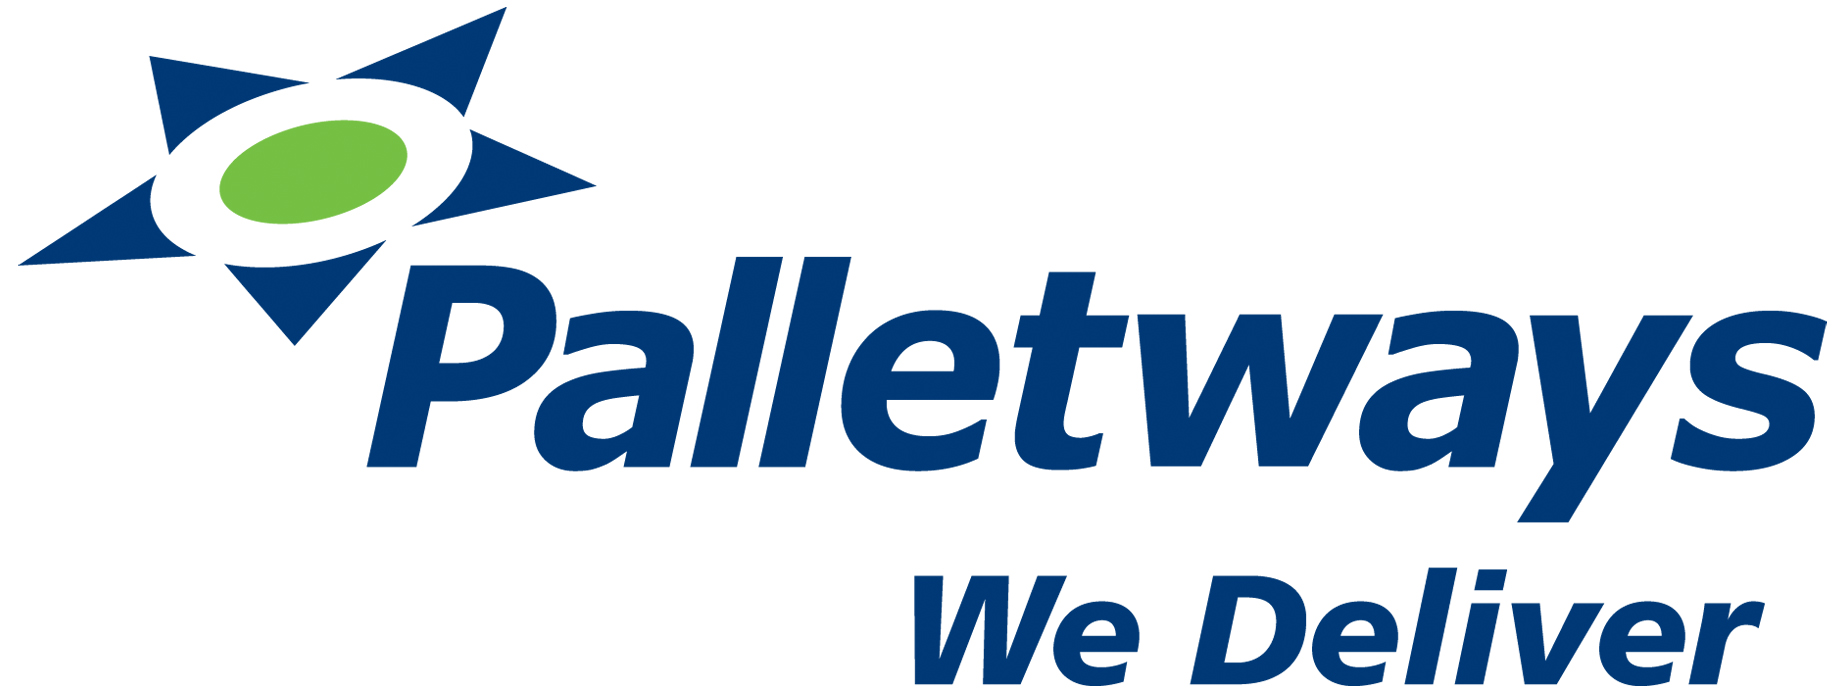 PALLETWAYS SPONSOR TECNICO DI BUYER POINT 2018